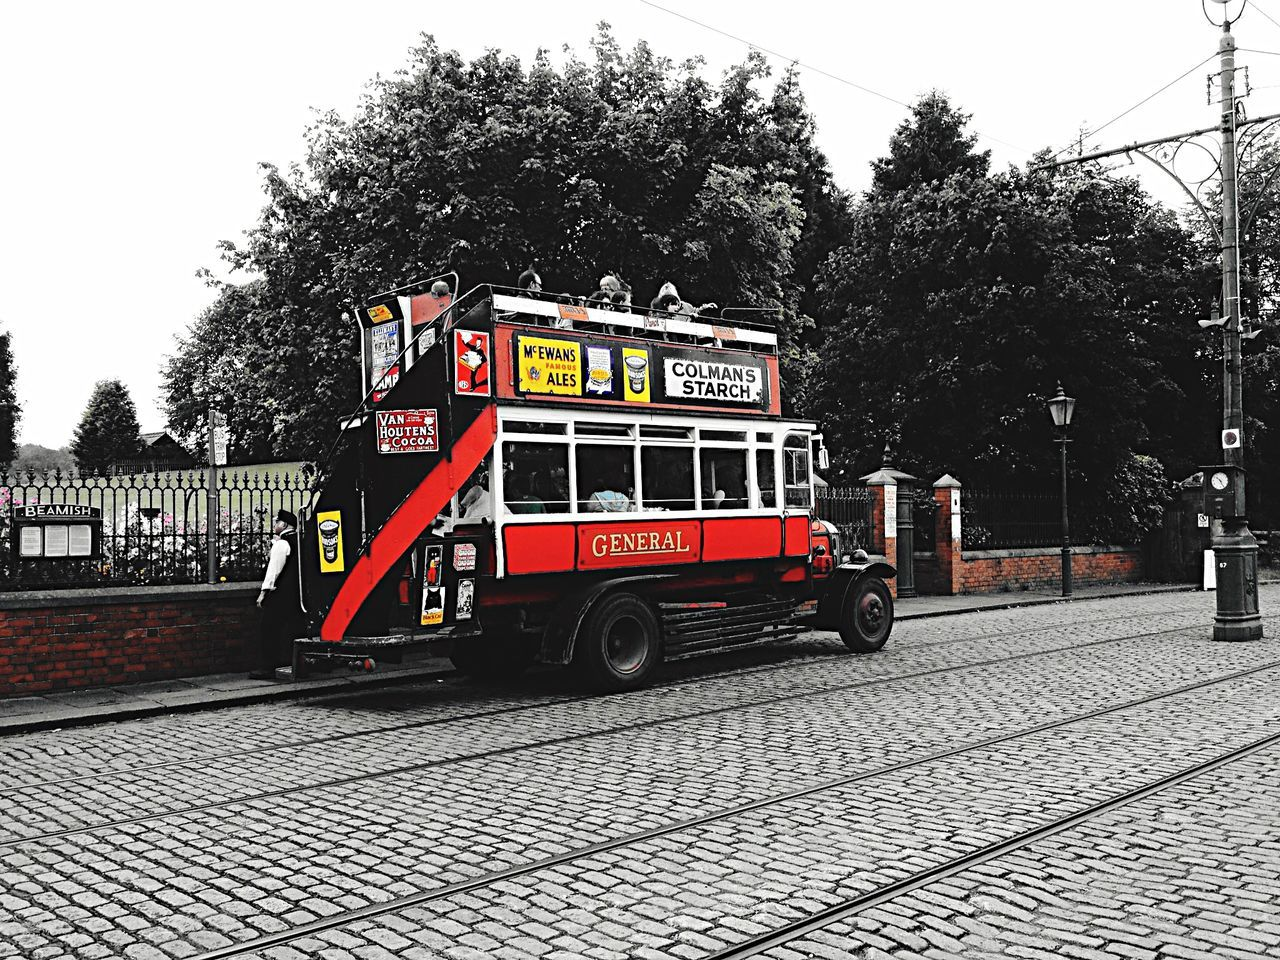 The vintage bus at Beamish Museum. Bus City Bus Museum Beamish Museum